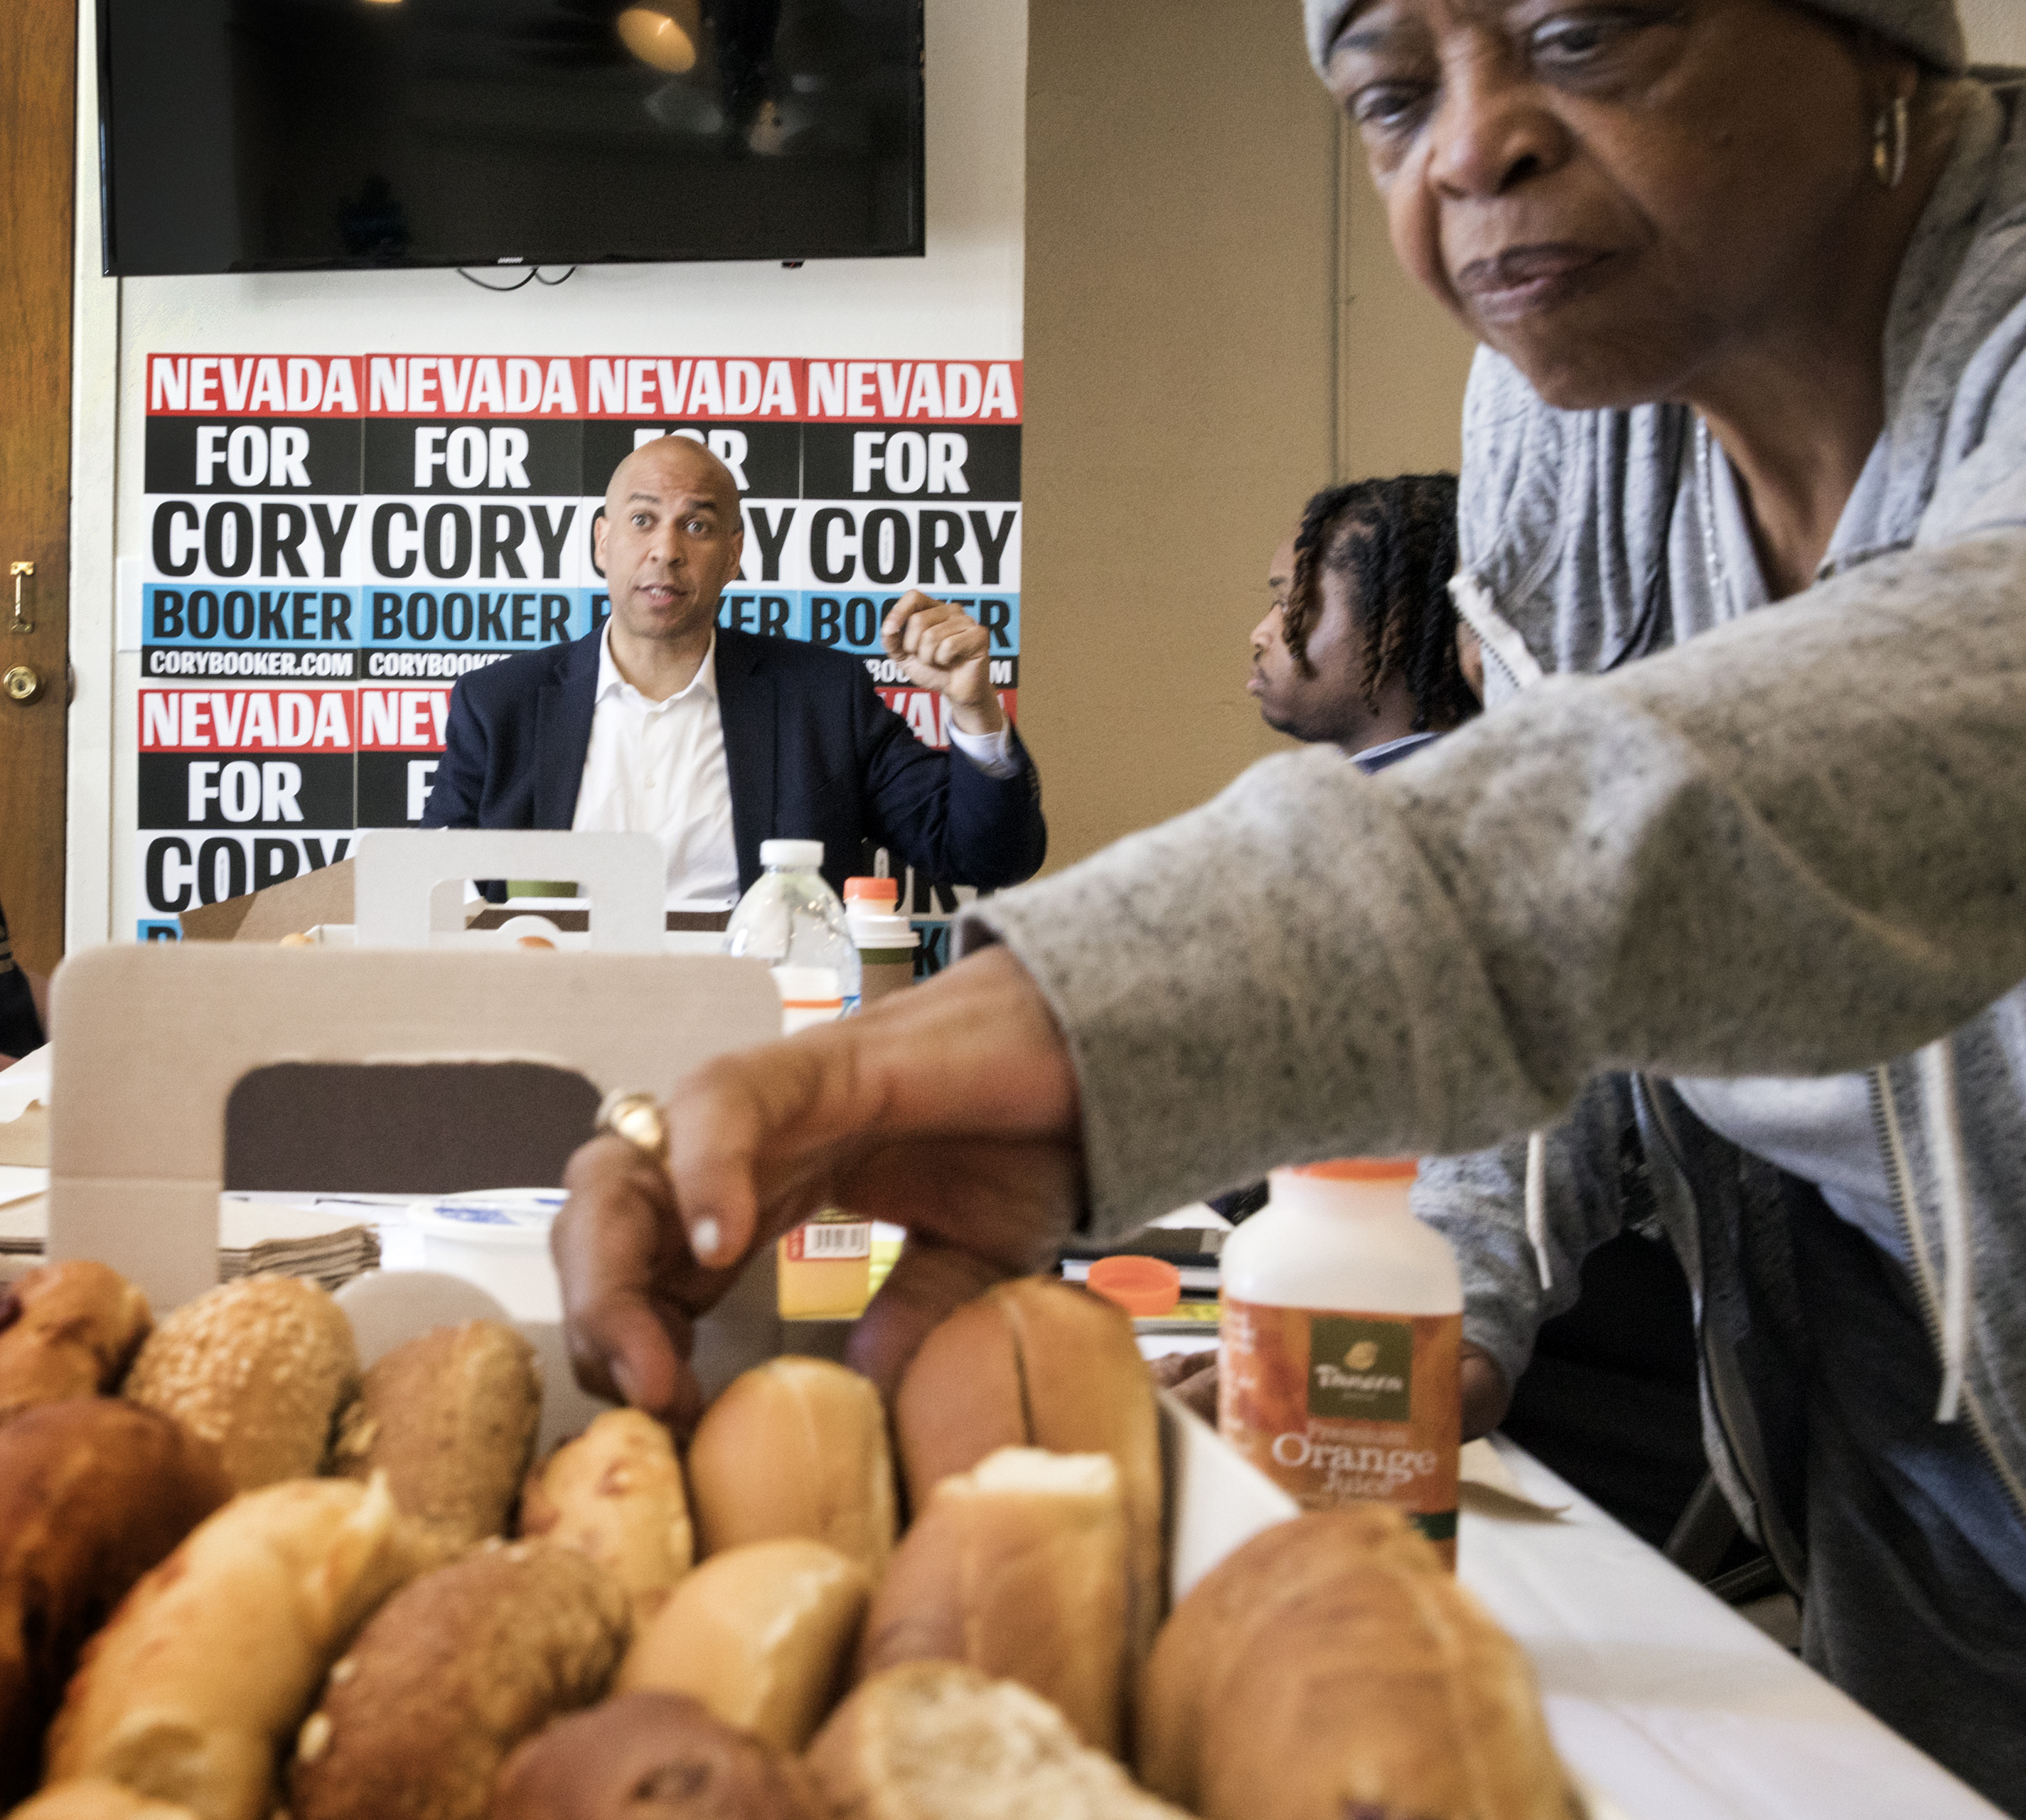 Bagels, church and campaigning: Community members bring focus back to everyday issues during Booker visit